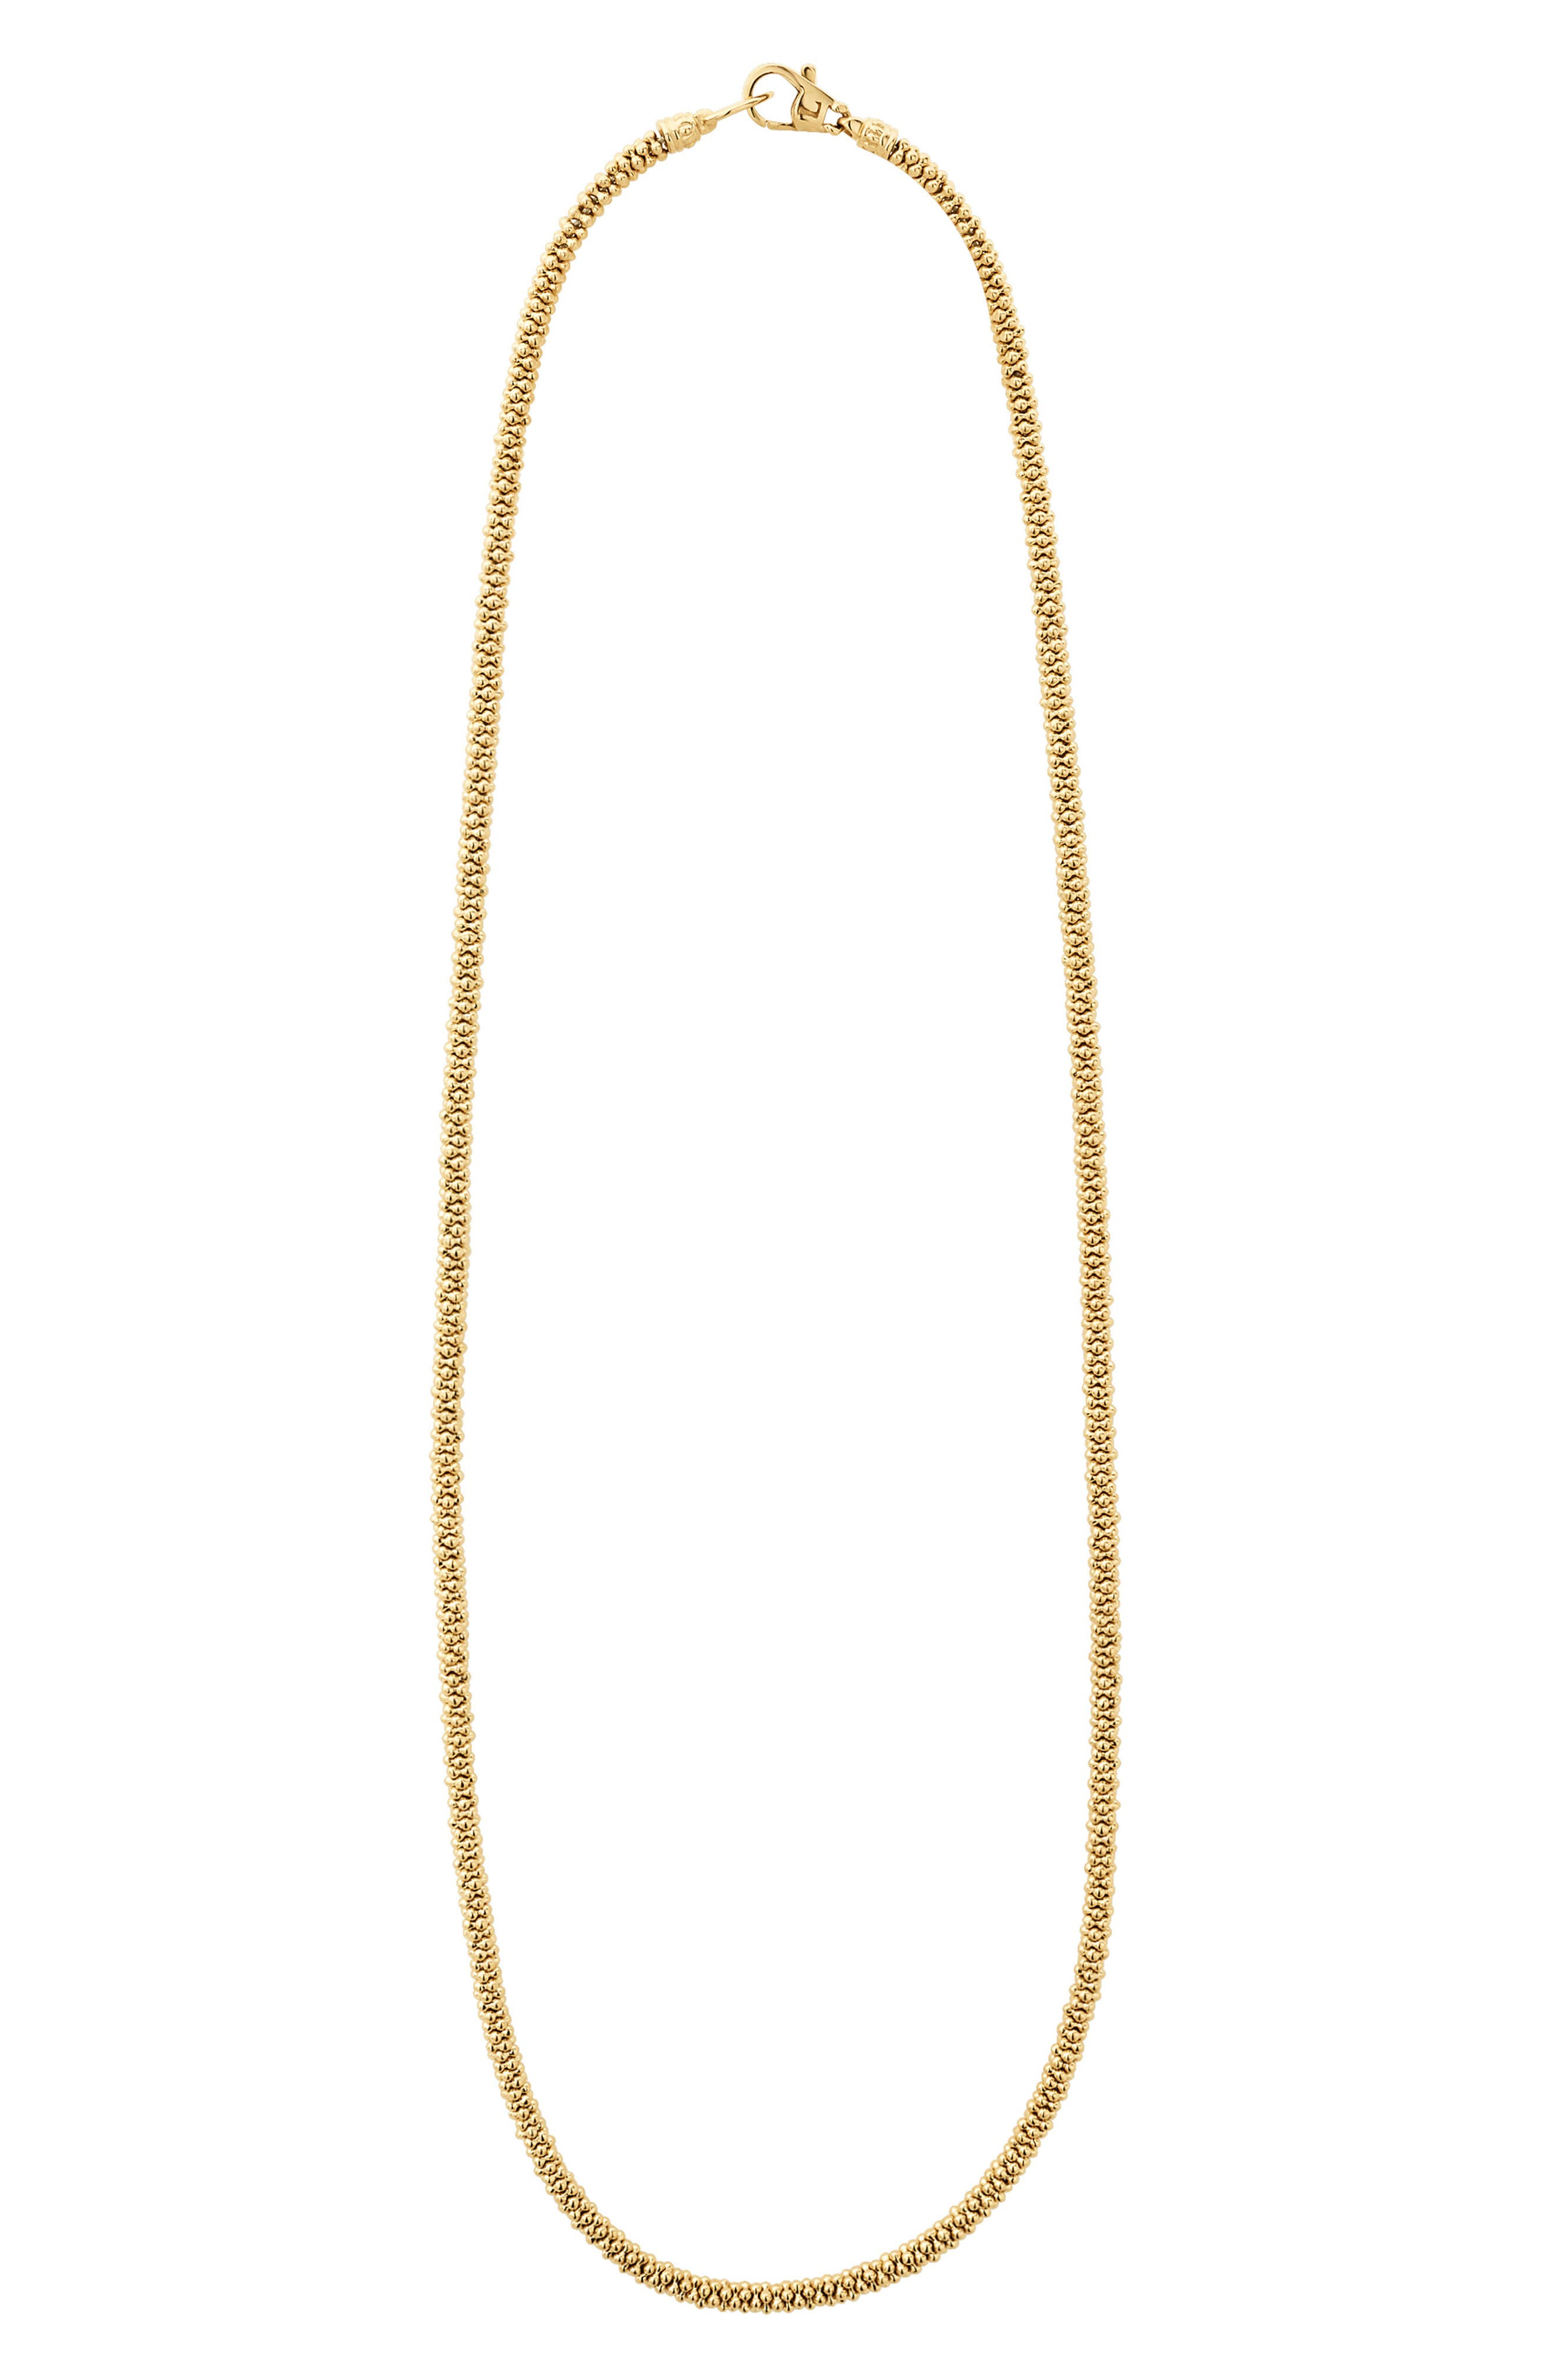 Caviar Gold Rope Necklace,                             Main thumbnail 1, color,                             GOLD